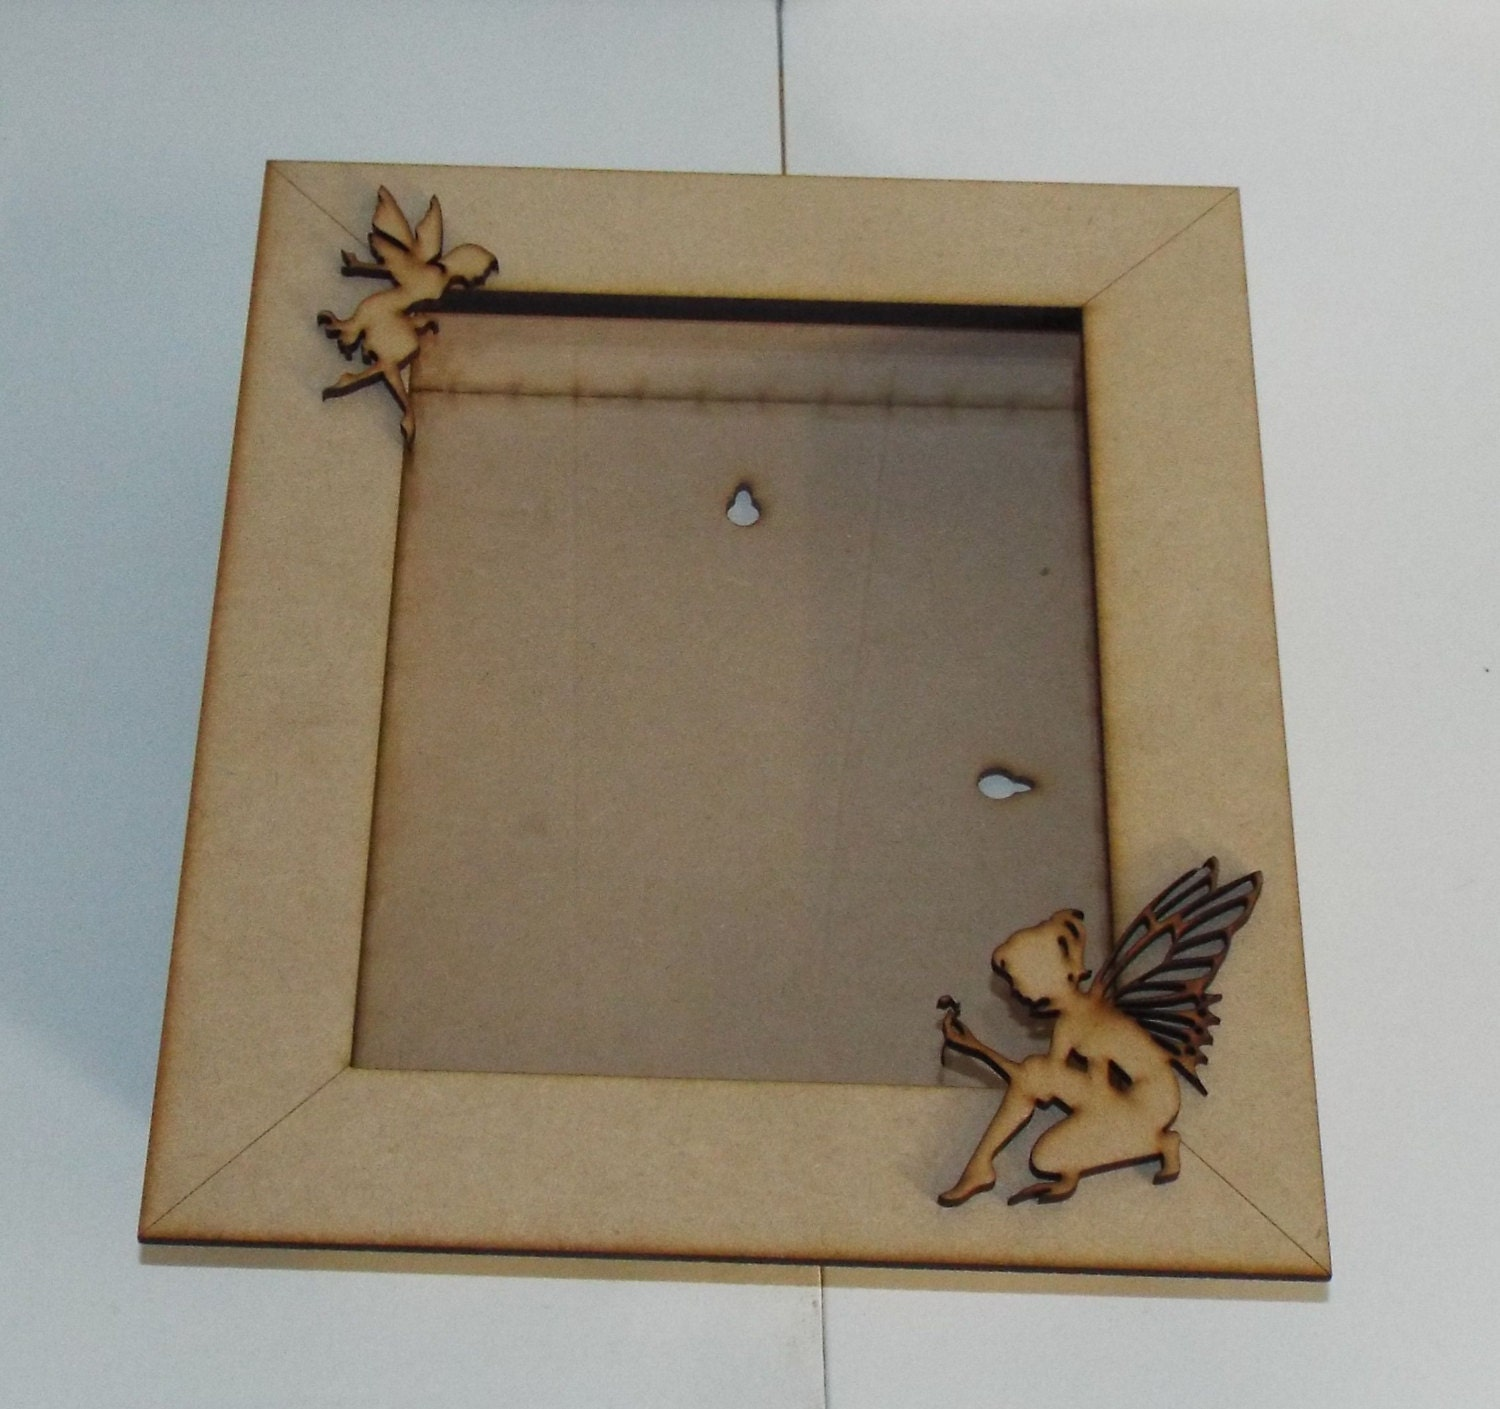 BOX FRAME 180mm x 230mm True 3d box frame for your project, 3D ...